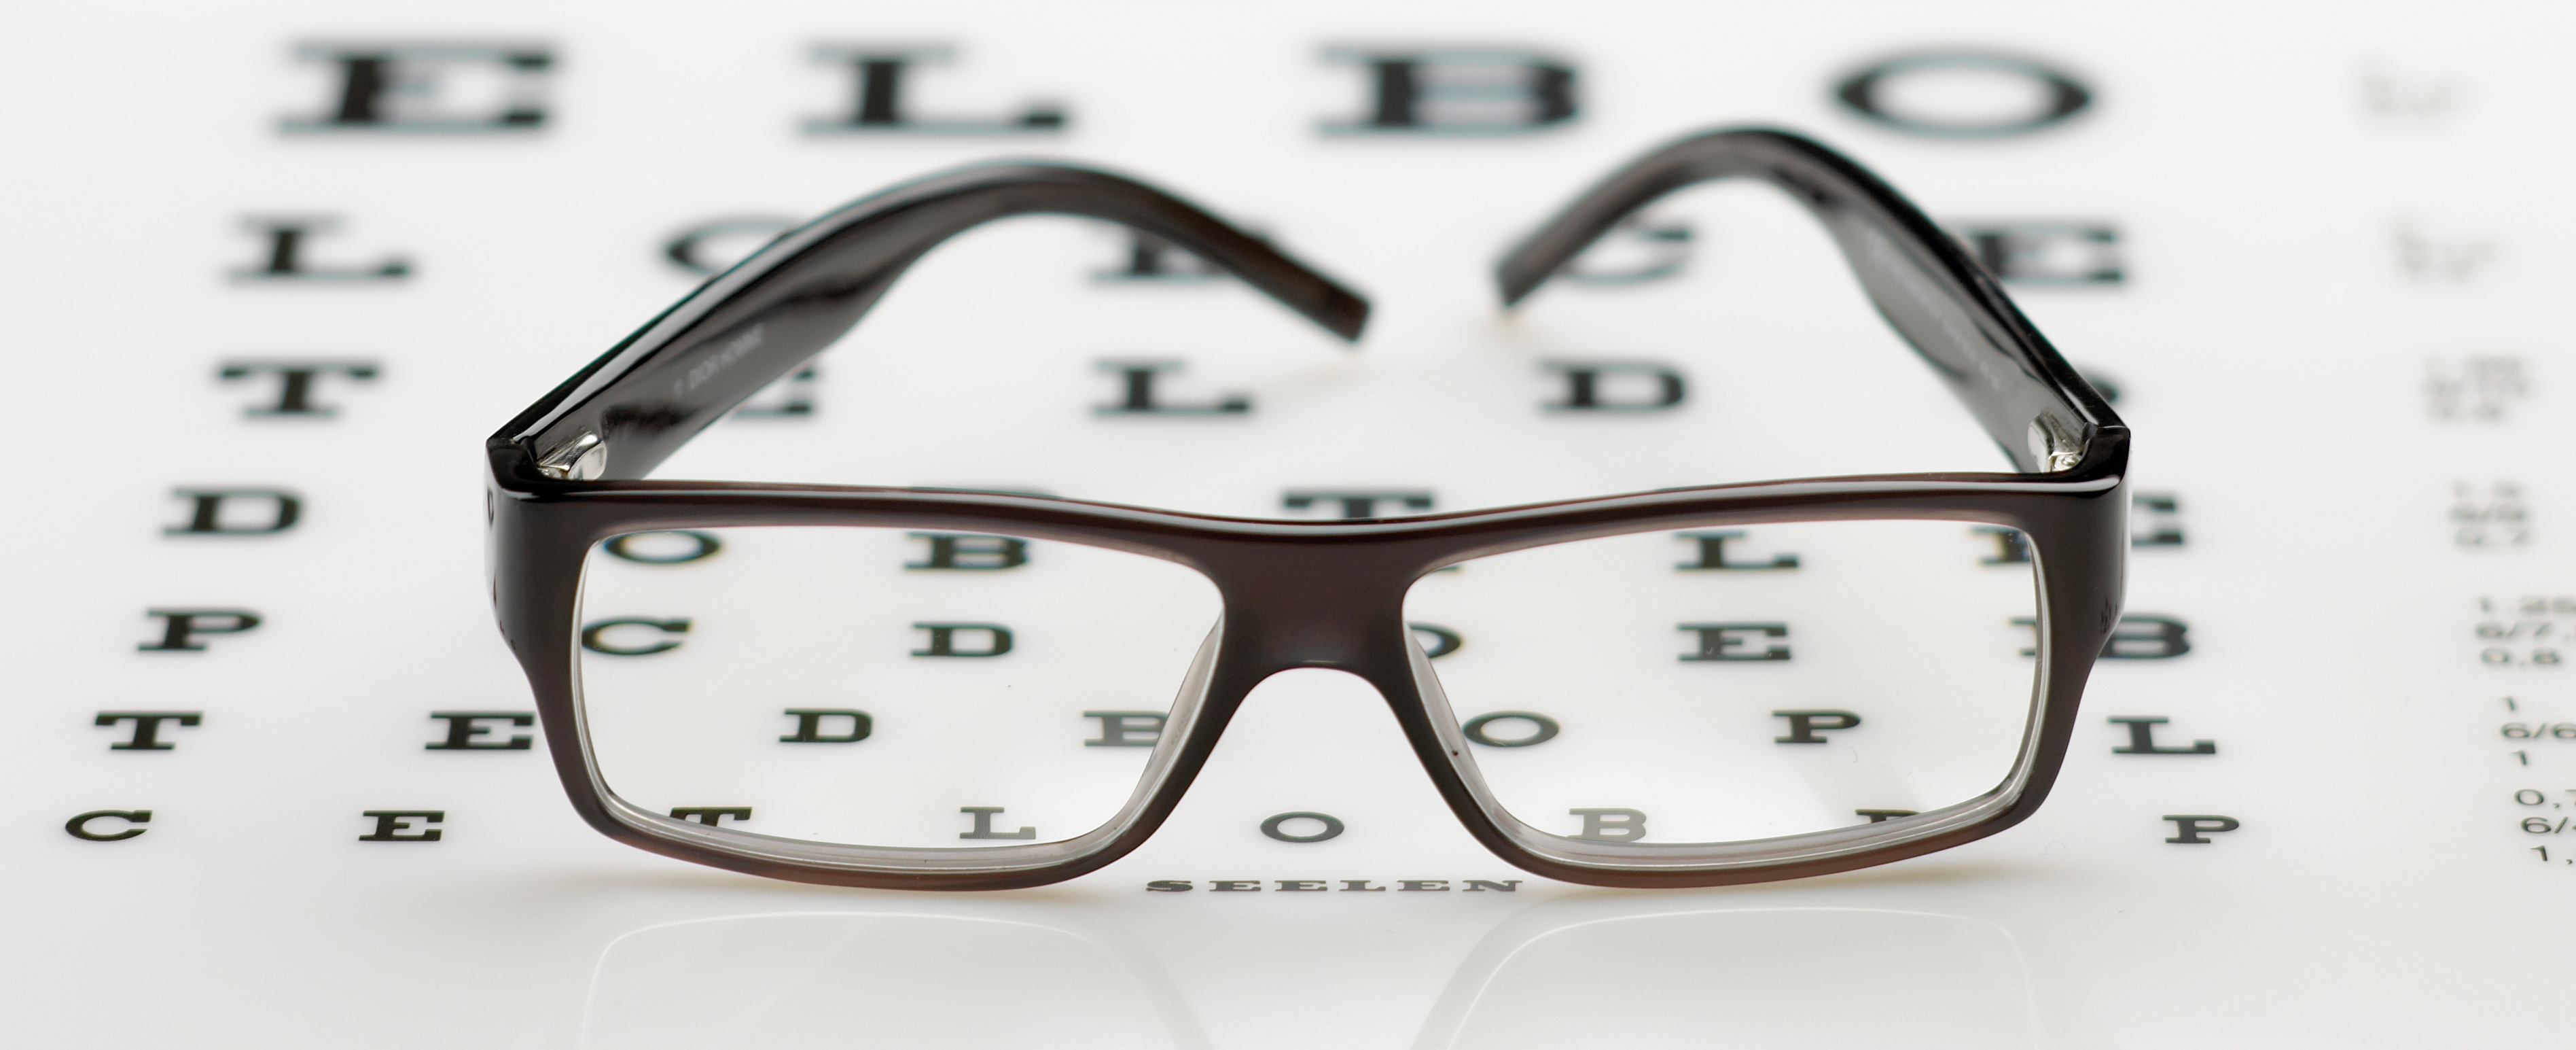 6829423b2a1c 5 Must-Ask Questions Before Your Lasik Eye Surgery